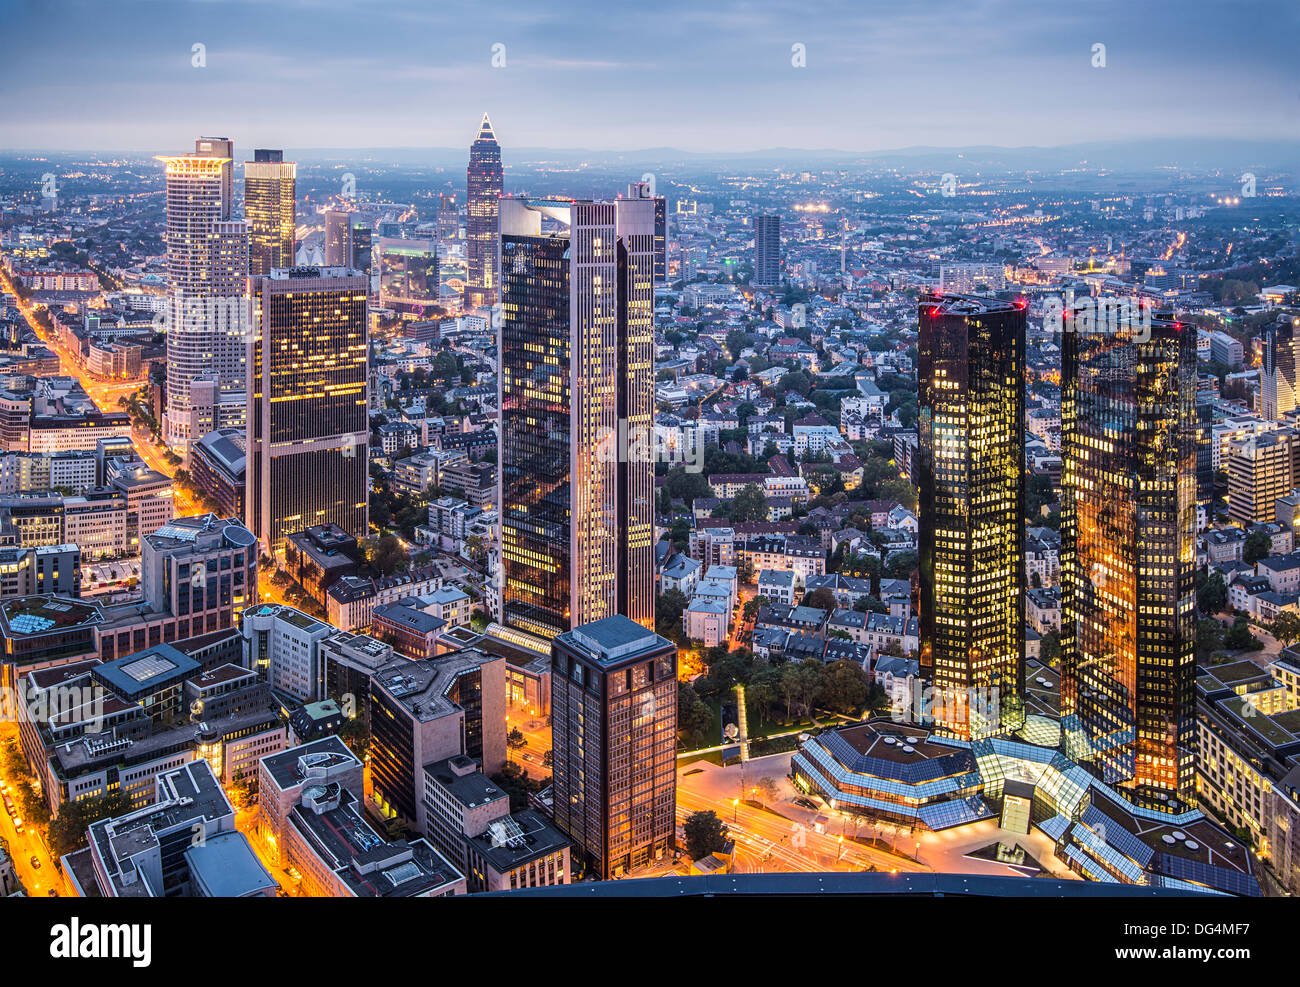 Cityscape of Frankfurt, Germany, the financial center of the country. - Stock Image